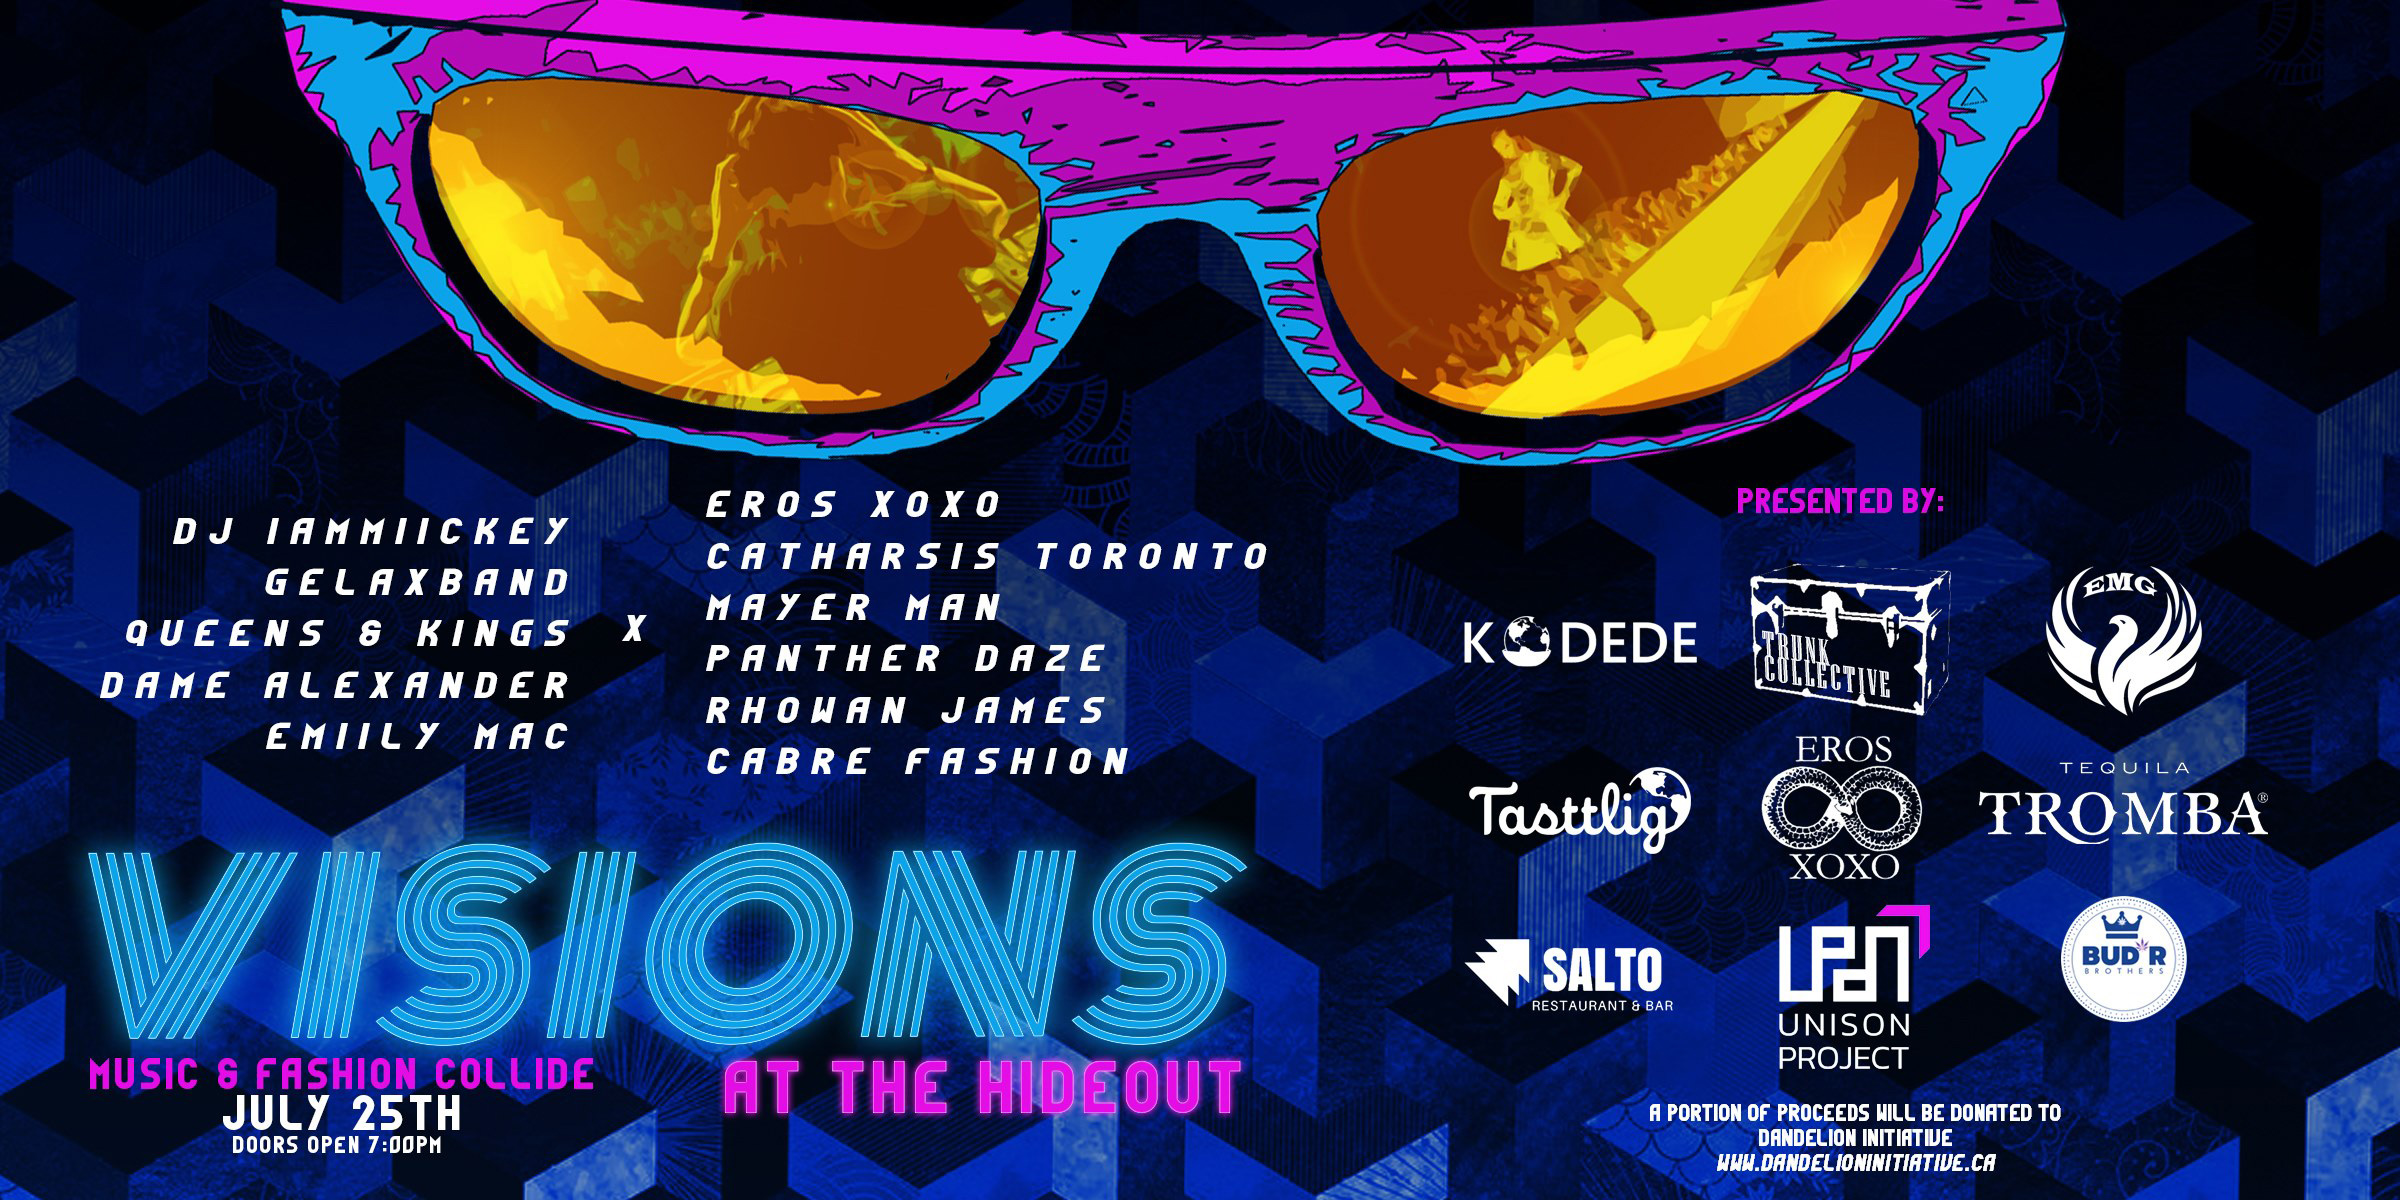 VISIONS IS AN ART SHOWCASE FEATURING A MELANGE OF SOME OF TORONTO'S BEST CREATIVE MINDS.  VISIONARIES & INFLUENCERS SESSION 7- 8:30 PM SPONSORED by  Tequila Tromba ,  Melrose On Adelaide ,  100km Foods Inc. ,  Red Bull ,  Mascot Brewery   Wine Lovers Agency ,  BUD'R Brothers ,  Walter Craft Caesar .  Tasttlig Corporation ,  Kodede   Salto Restaurant & Bar ,  The Hideout Toronto .  Proceeds from the night will go to support  Dandelion Initiative   We kick off the night celebrating creativity, ingenuity and community. Meet and greet our Sponsors, Vendors & Artists alongside forward thinking leaders who have helped shape Toronto's social landscape. Enjoy complimentary hors d'oeuvres, premium cocktails and treats of all kinds. Be part of an exciting networking event and leave with a Vision Swag Bag.  TICKET PRICE $35  THE SHOW MUST GO ON 9 - LATE PM - Delicious food vendors  - Amazing fashion & jewelry vendors ( Rebelhowlstudios ,  Panther Daze Designs ,  Catharsis Toronto , Eros XOXO by  Dame Alexander ,  Mayer Man ,  Monoxide , Cabre Fashions)  - The best DJ  Mike Ashman  aka iammiikey - Fashion show featuring top designers - Four incredible live bands  Gelax Band   Queens & Kings   Emily Mac Music   Dame Alexander   Get your EARLYBIRD tickets online through  Eventbrite  and save!  $15 online $25 at the door.